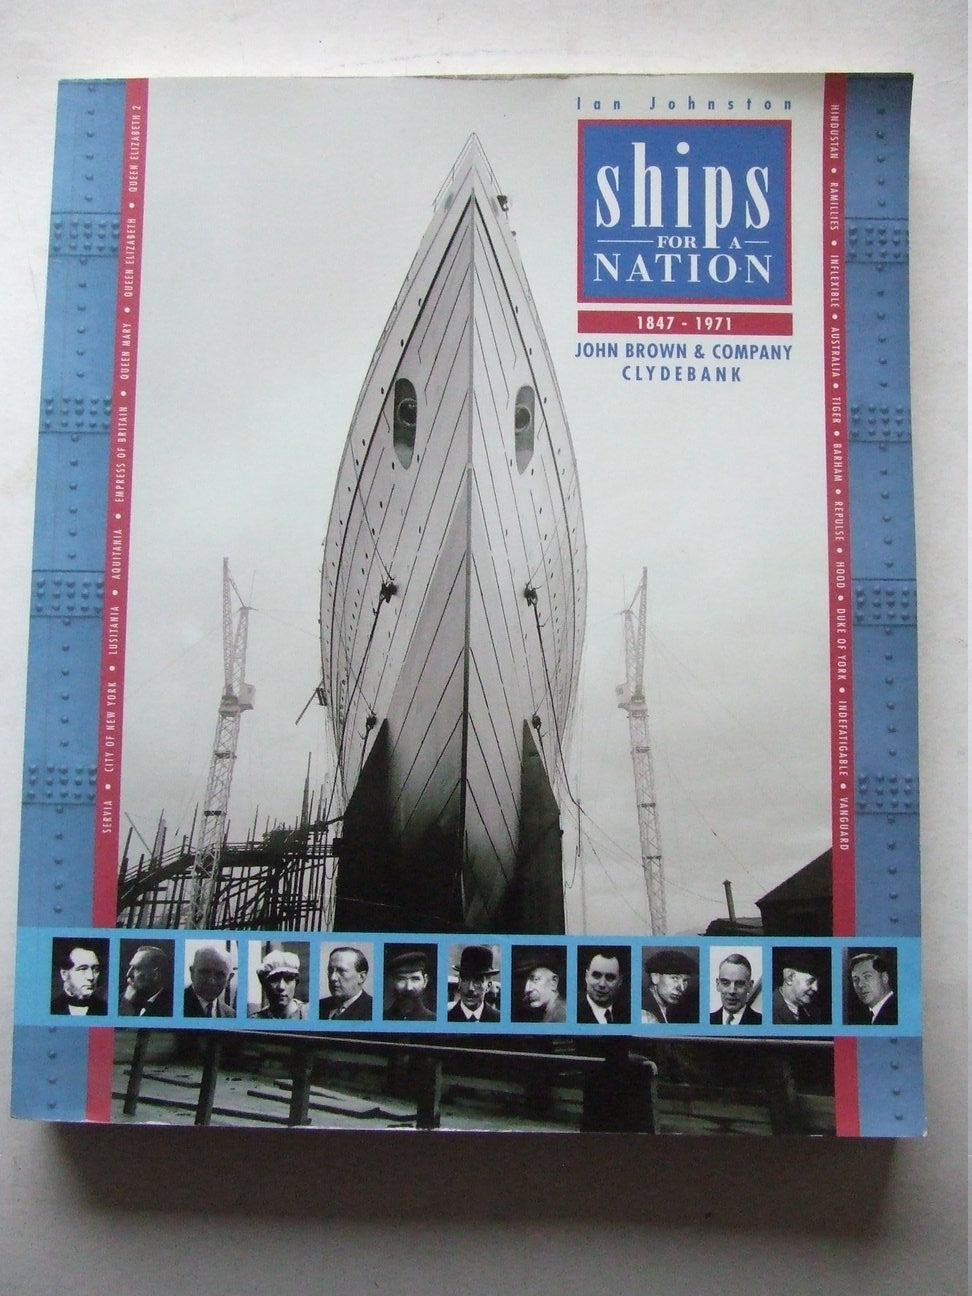 Ships for the Nation, 1847-1971